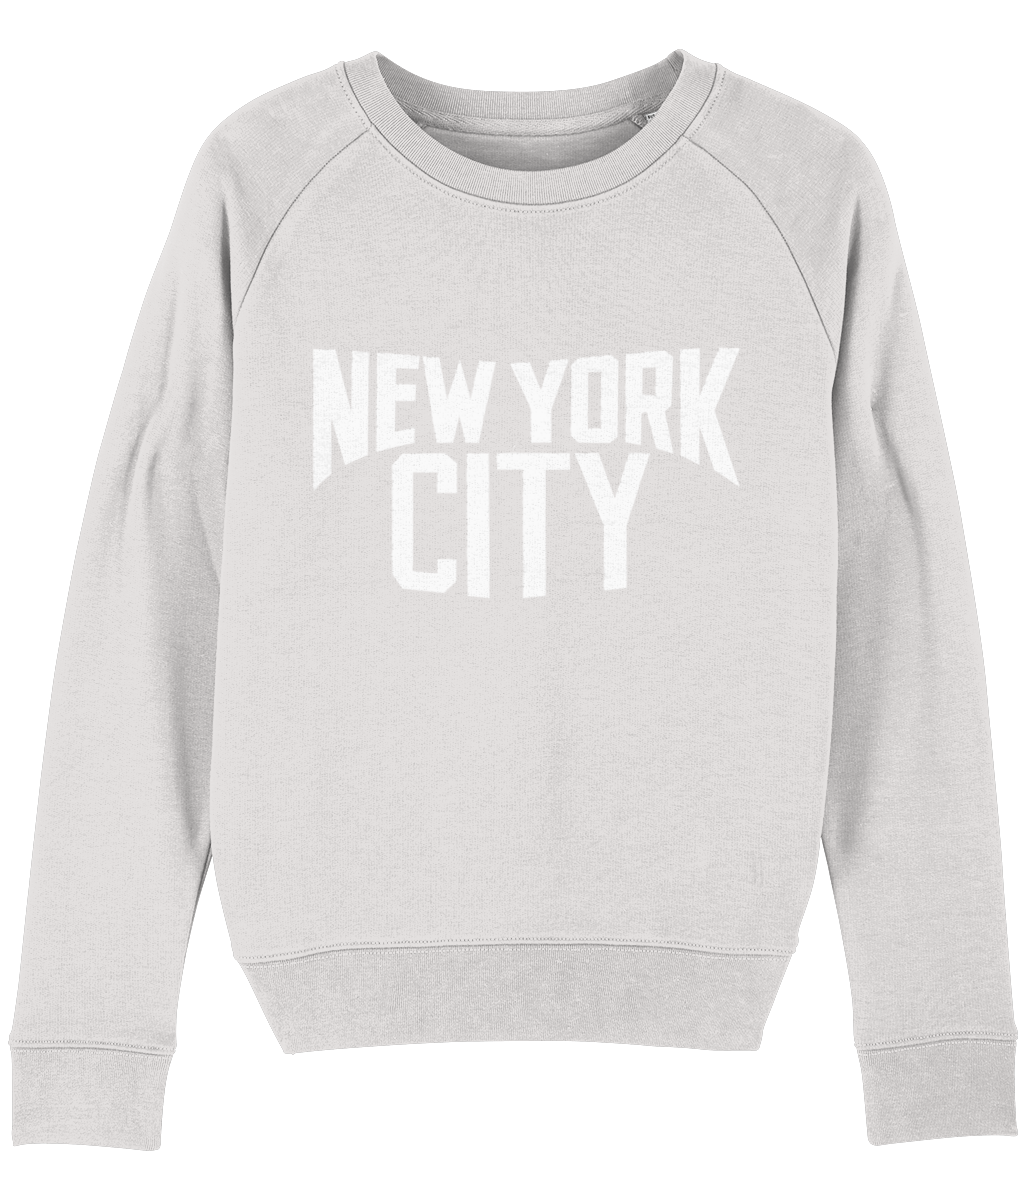 New York City Sweatshirt